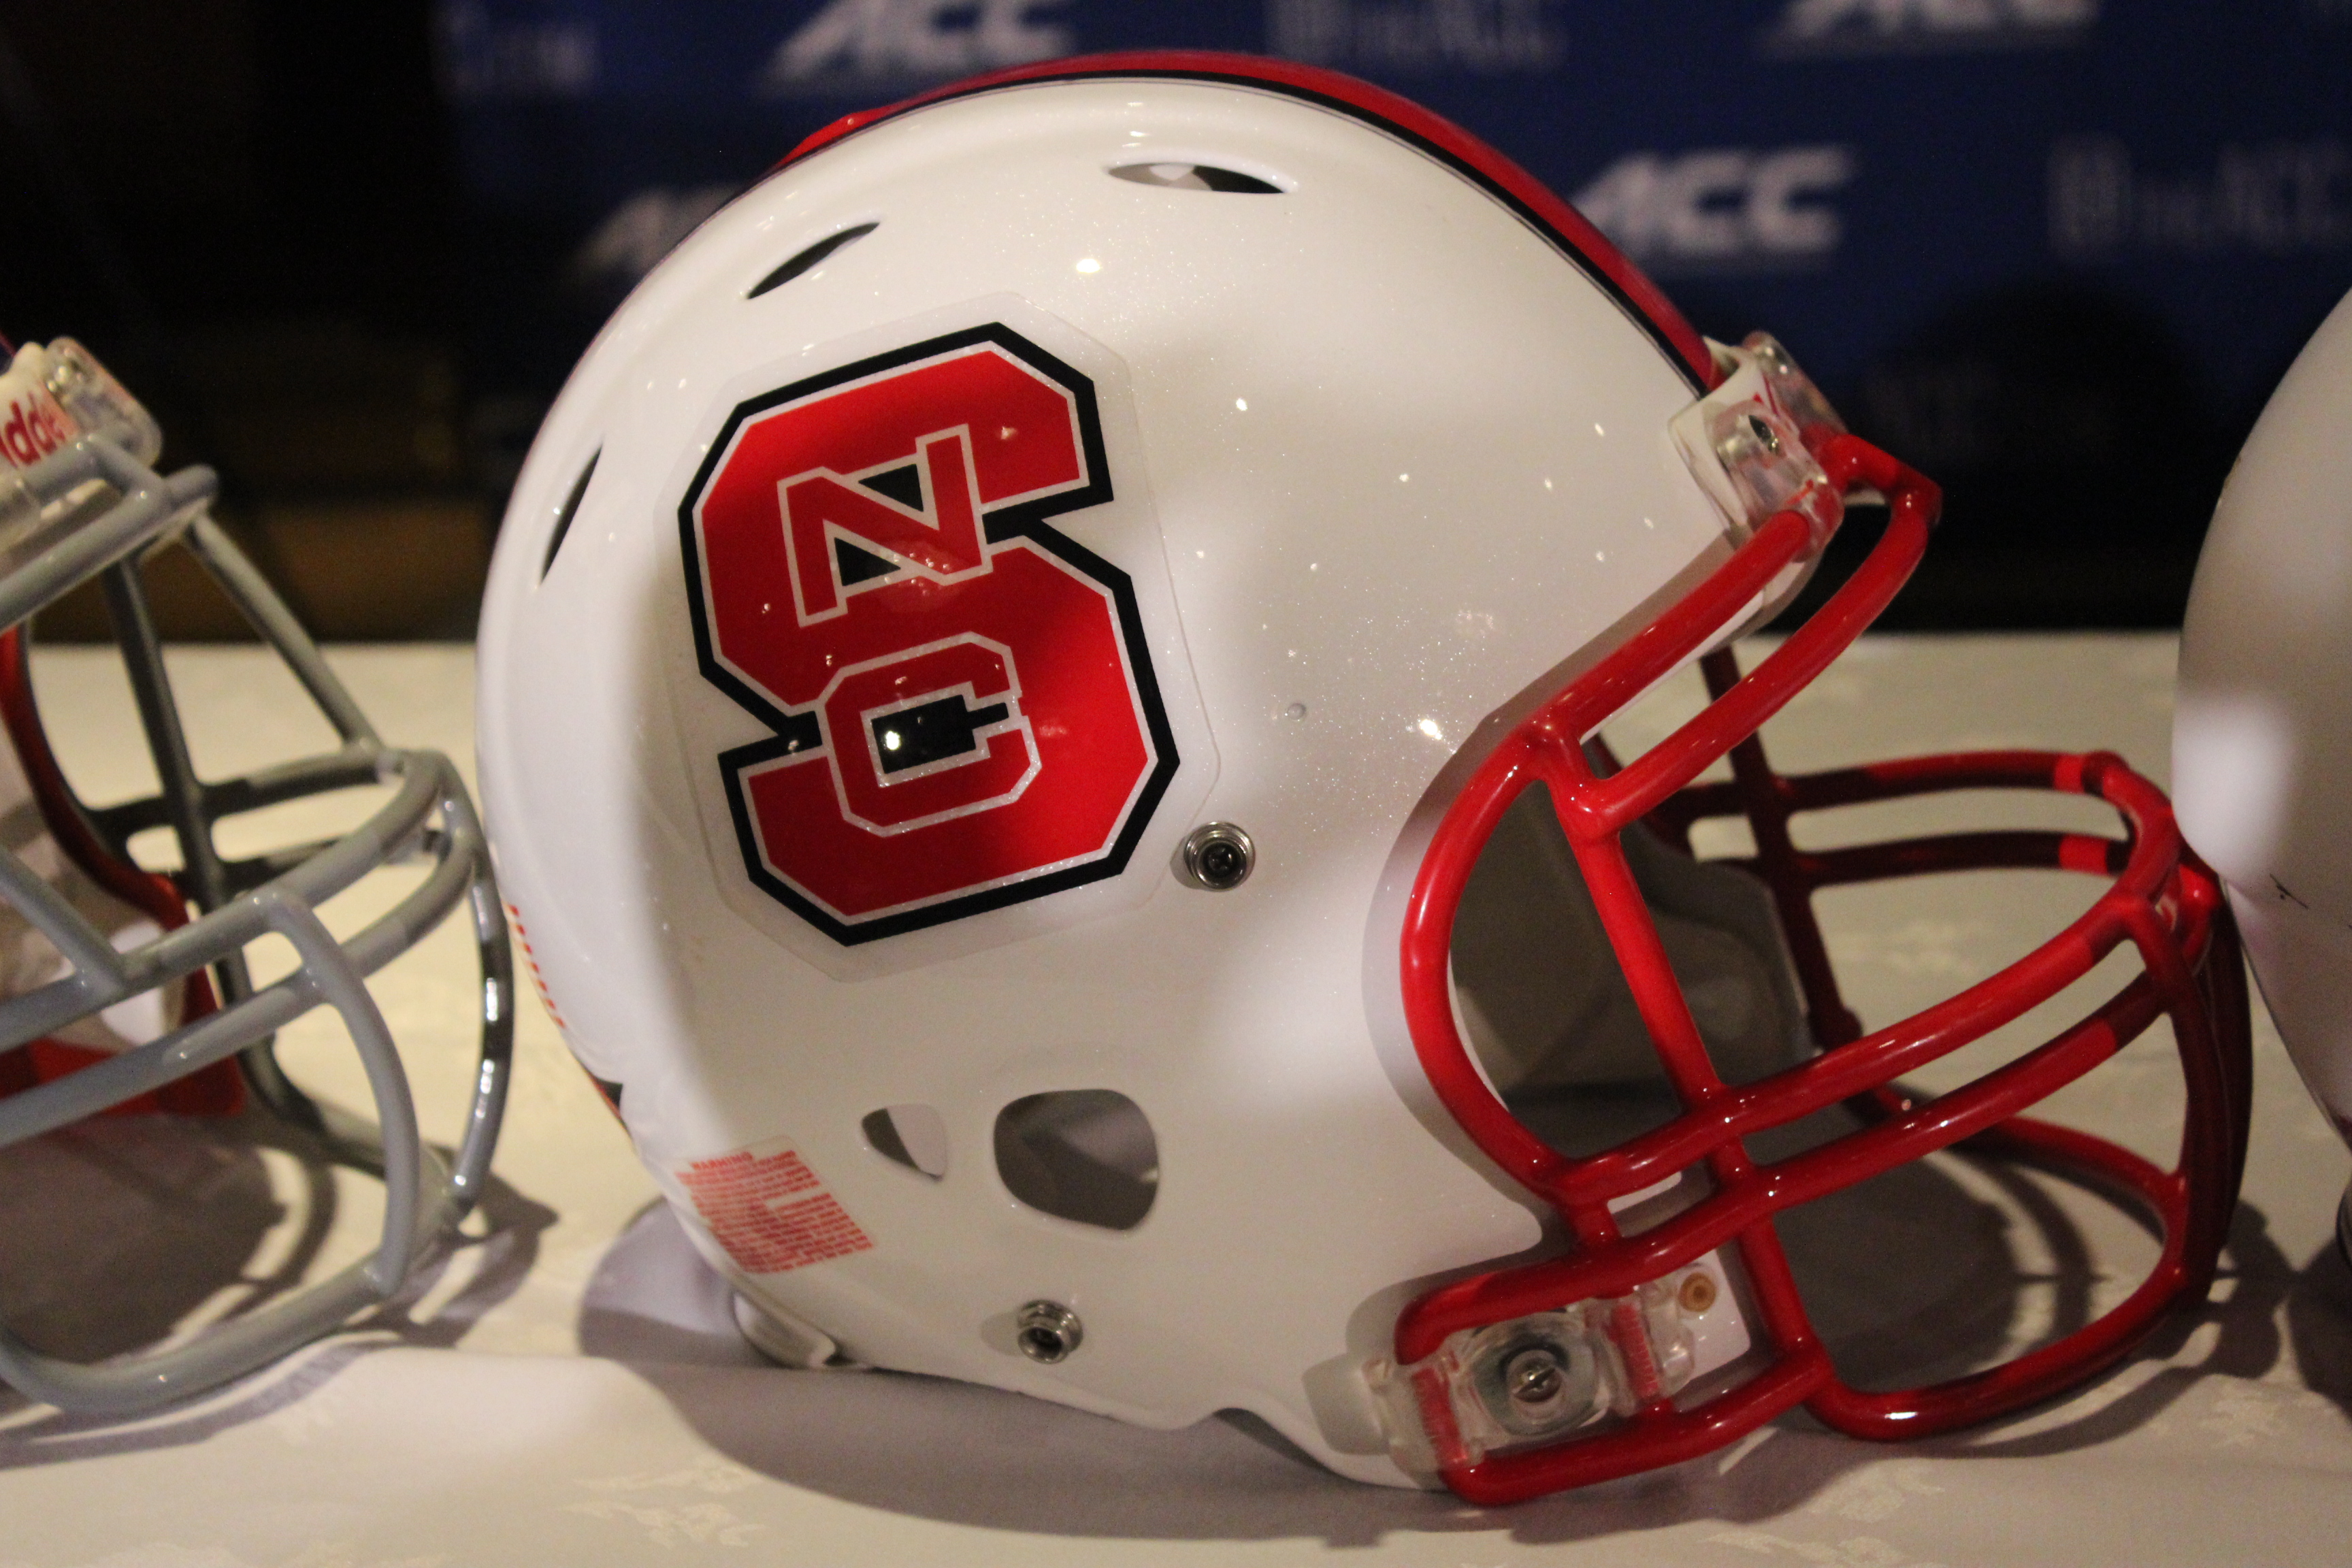 North Carolina State (NC State) Helmet 2014 ACC Kickoff Photo by Mark Blankenbaker